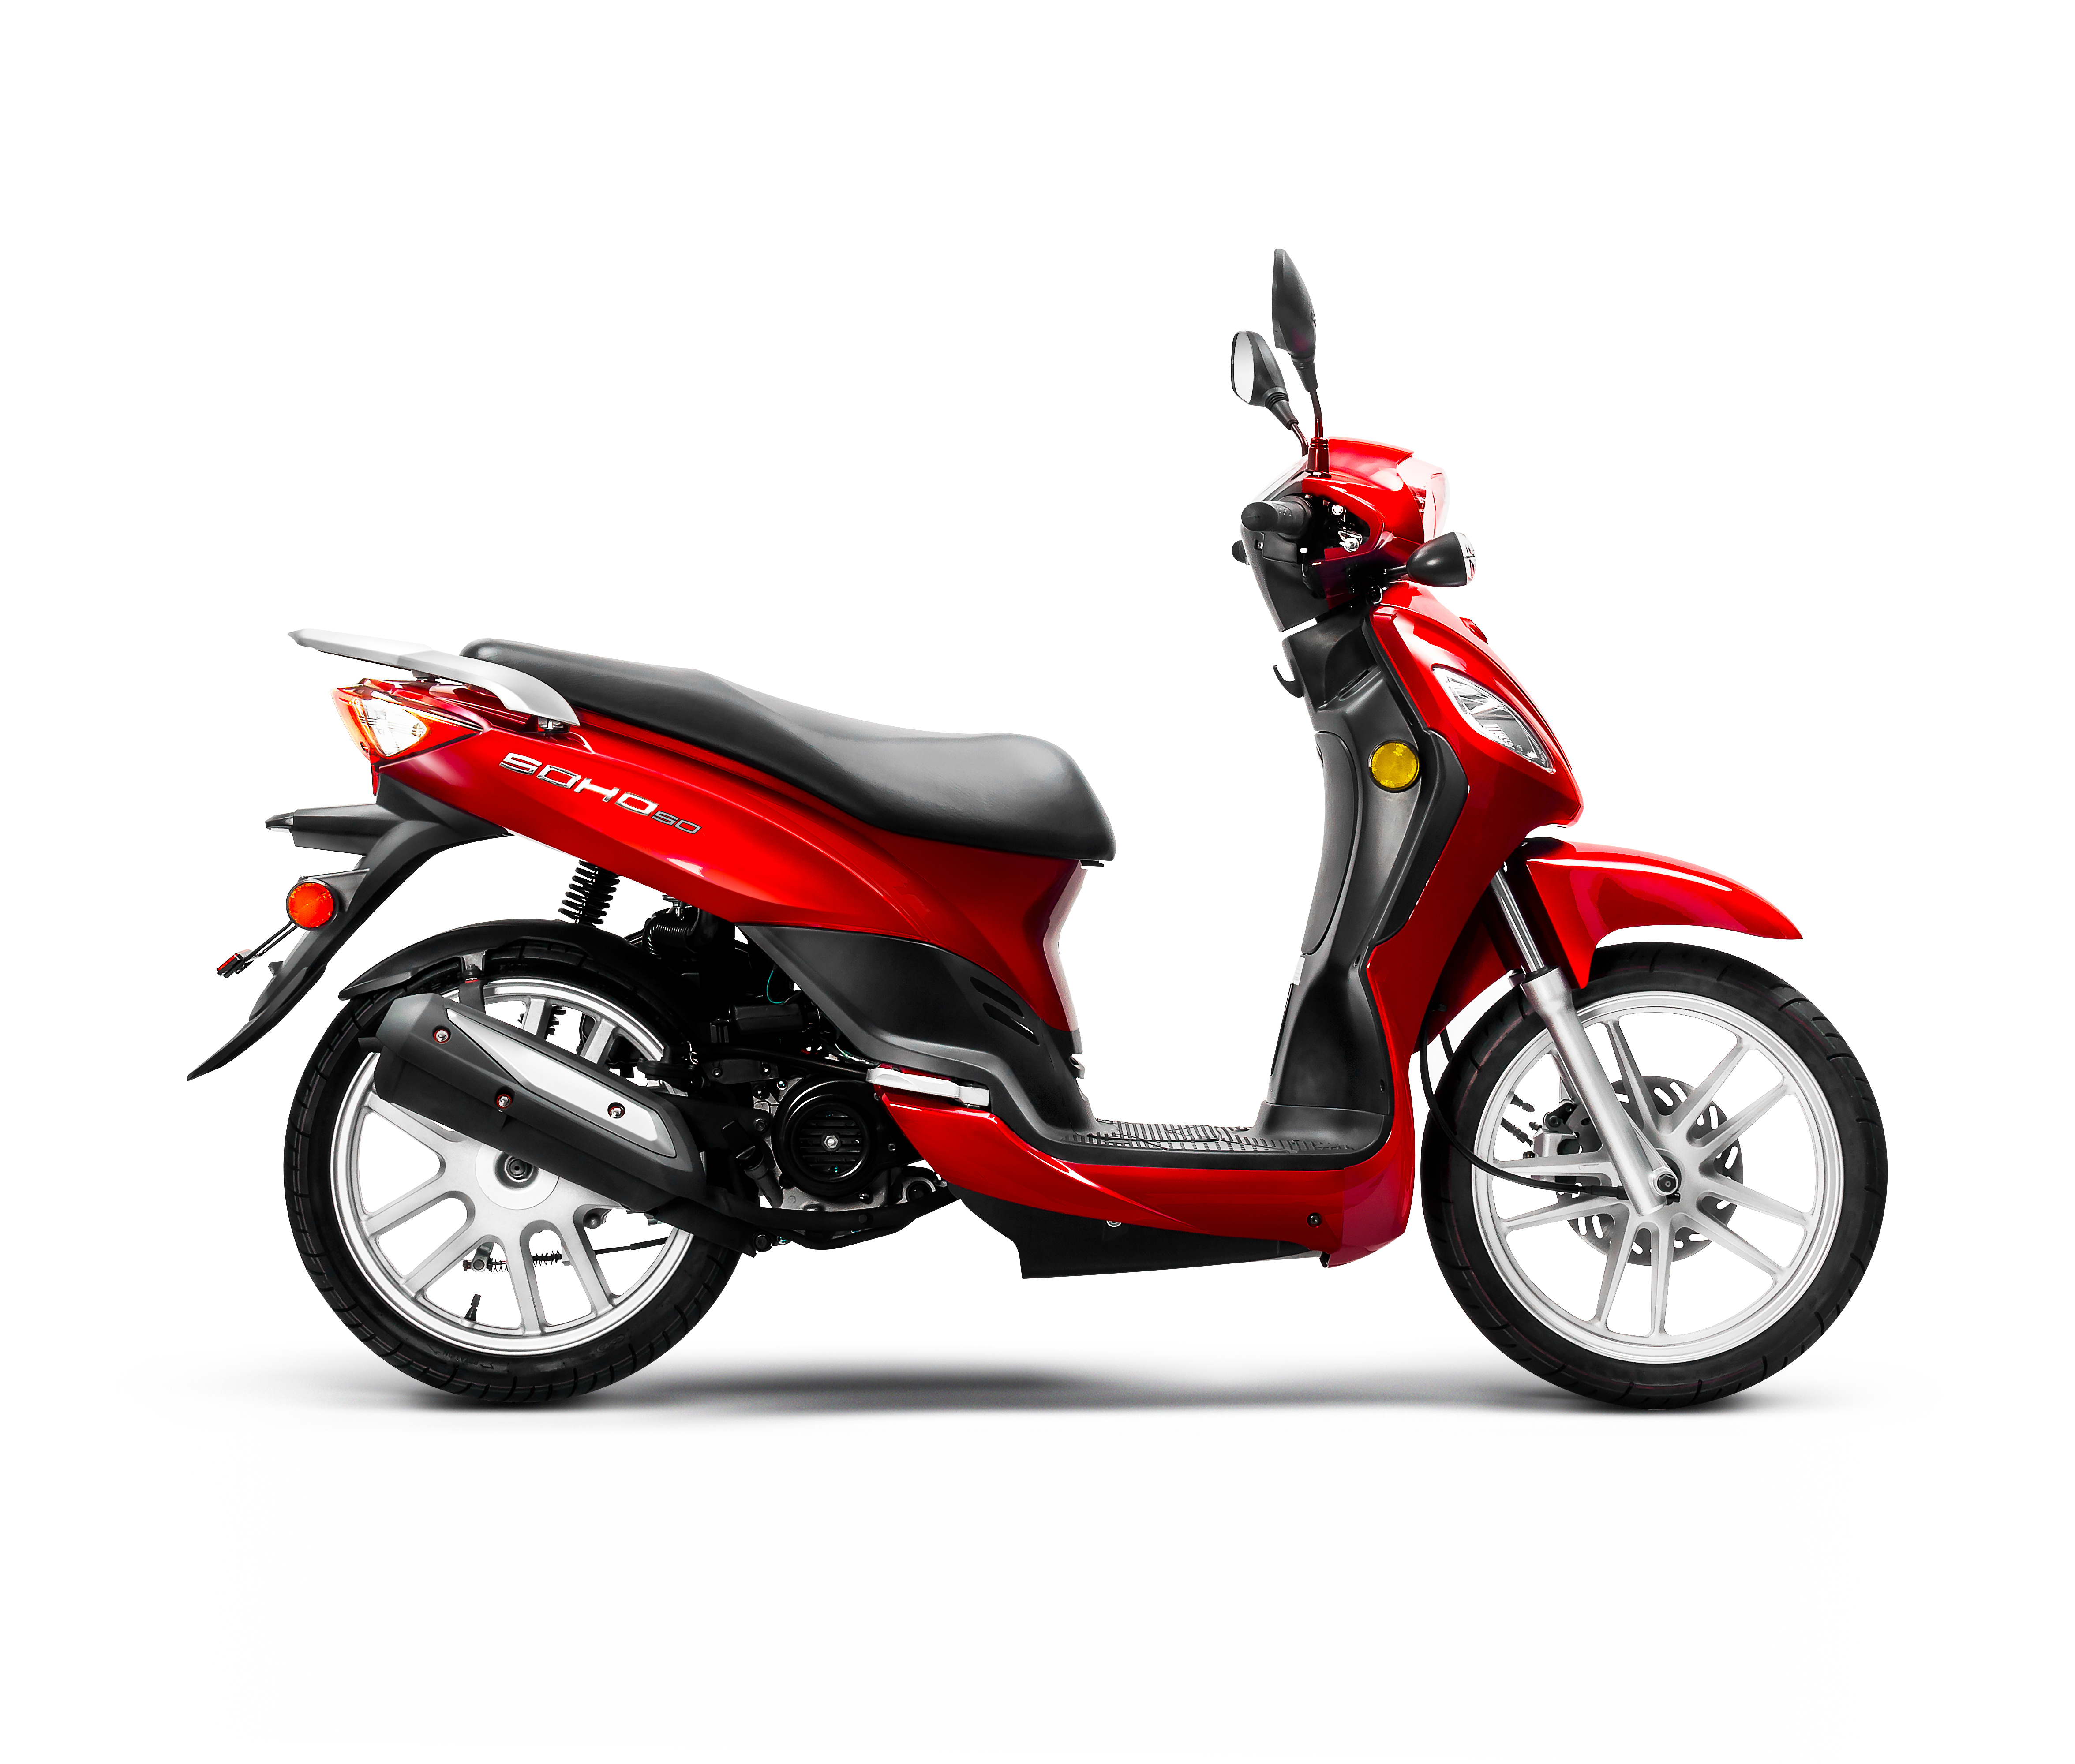 Scoots – Scooter Sales, Service and Rental